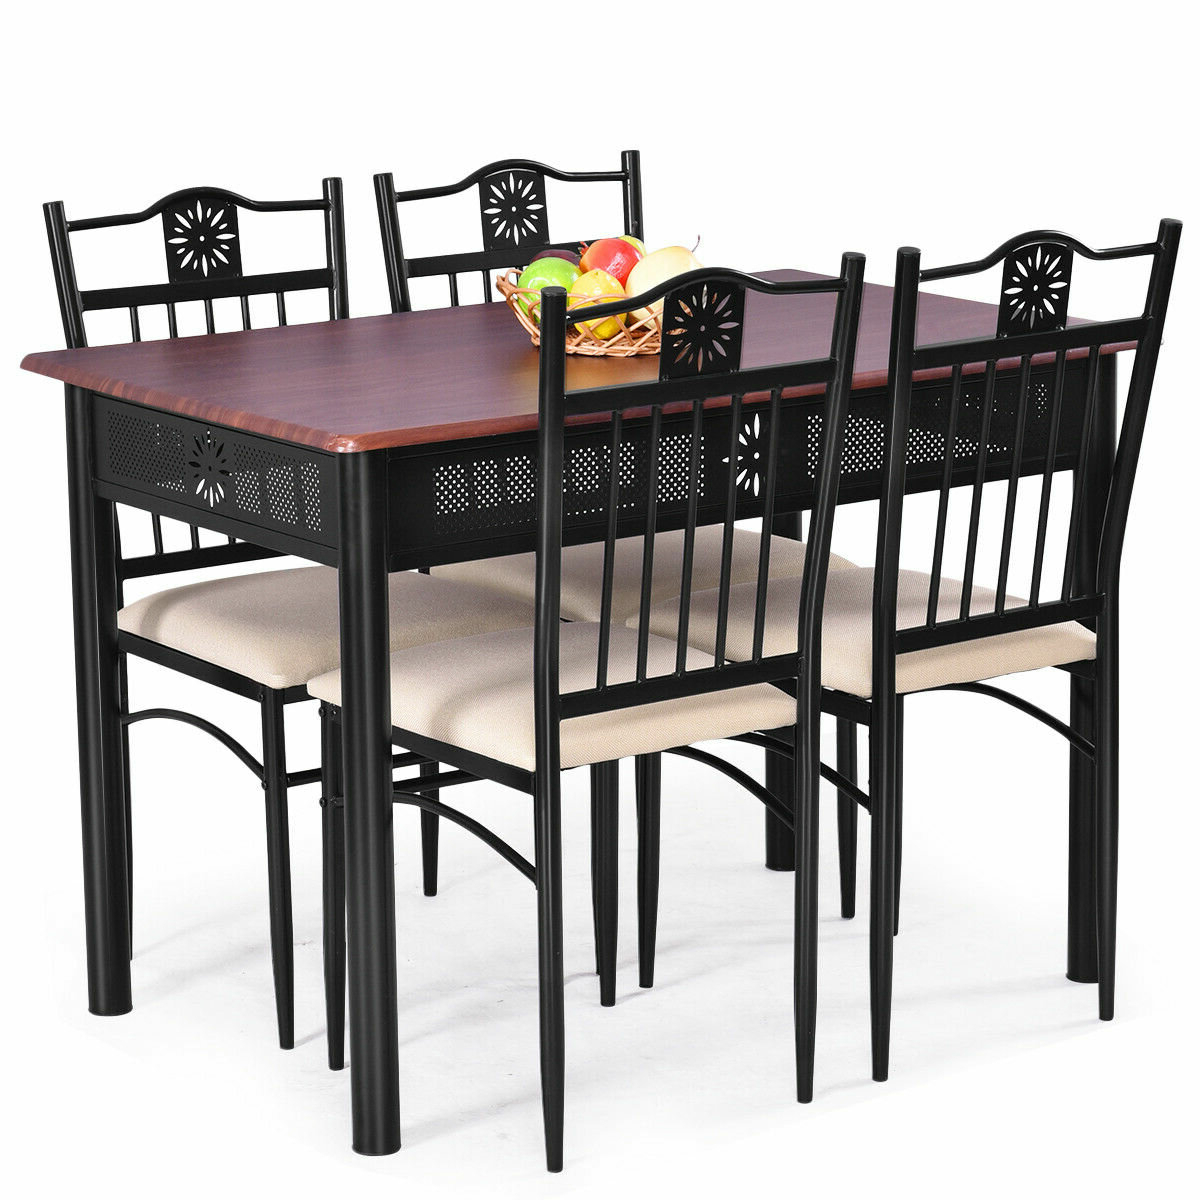 Miskell 3 Piece Dining Sets For Recent Winston Porter Ganya 5 Piece Dining Set & Reviews (View 6 of 25)